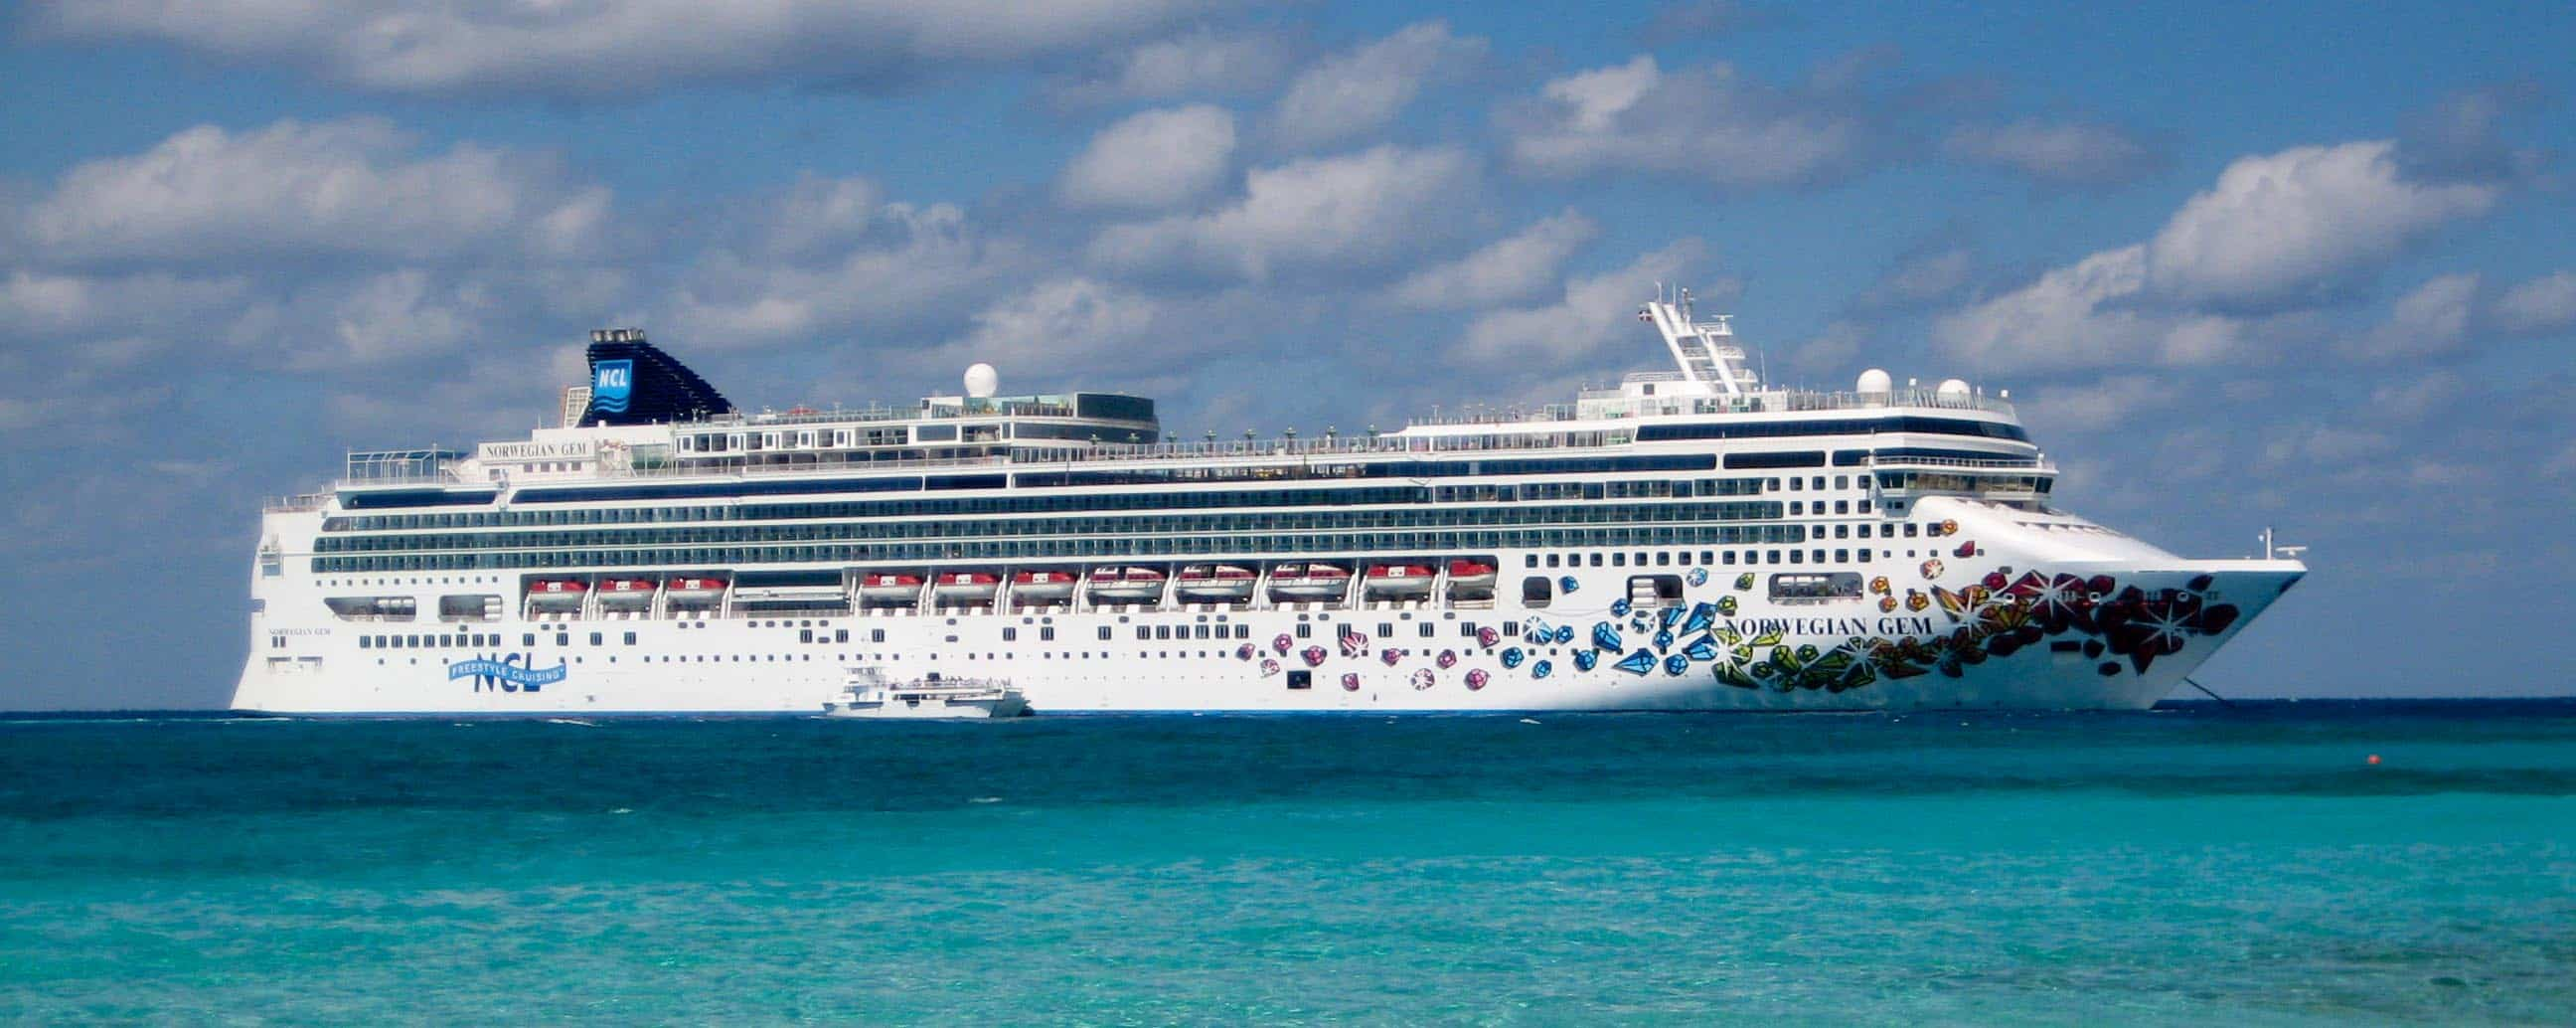 Things to know before you cruise, all about cruises, best cruise deals, best priced cruises, cruise vacation, last minute cruises.